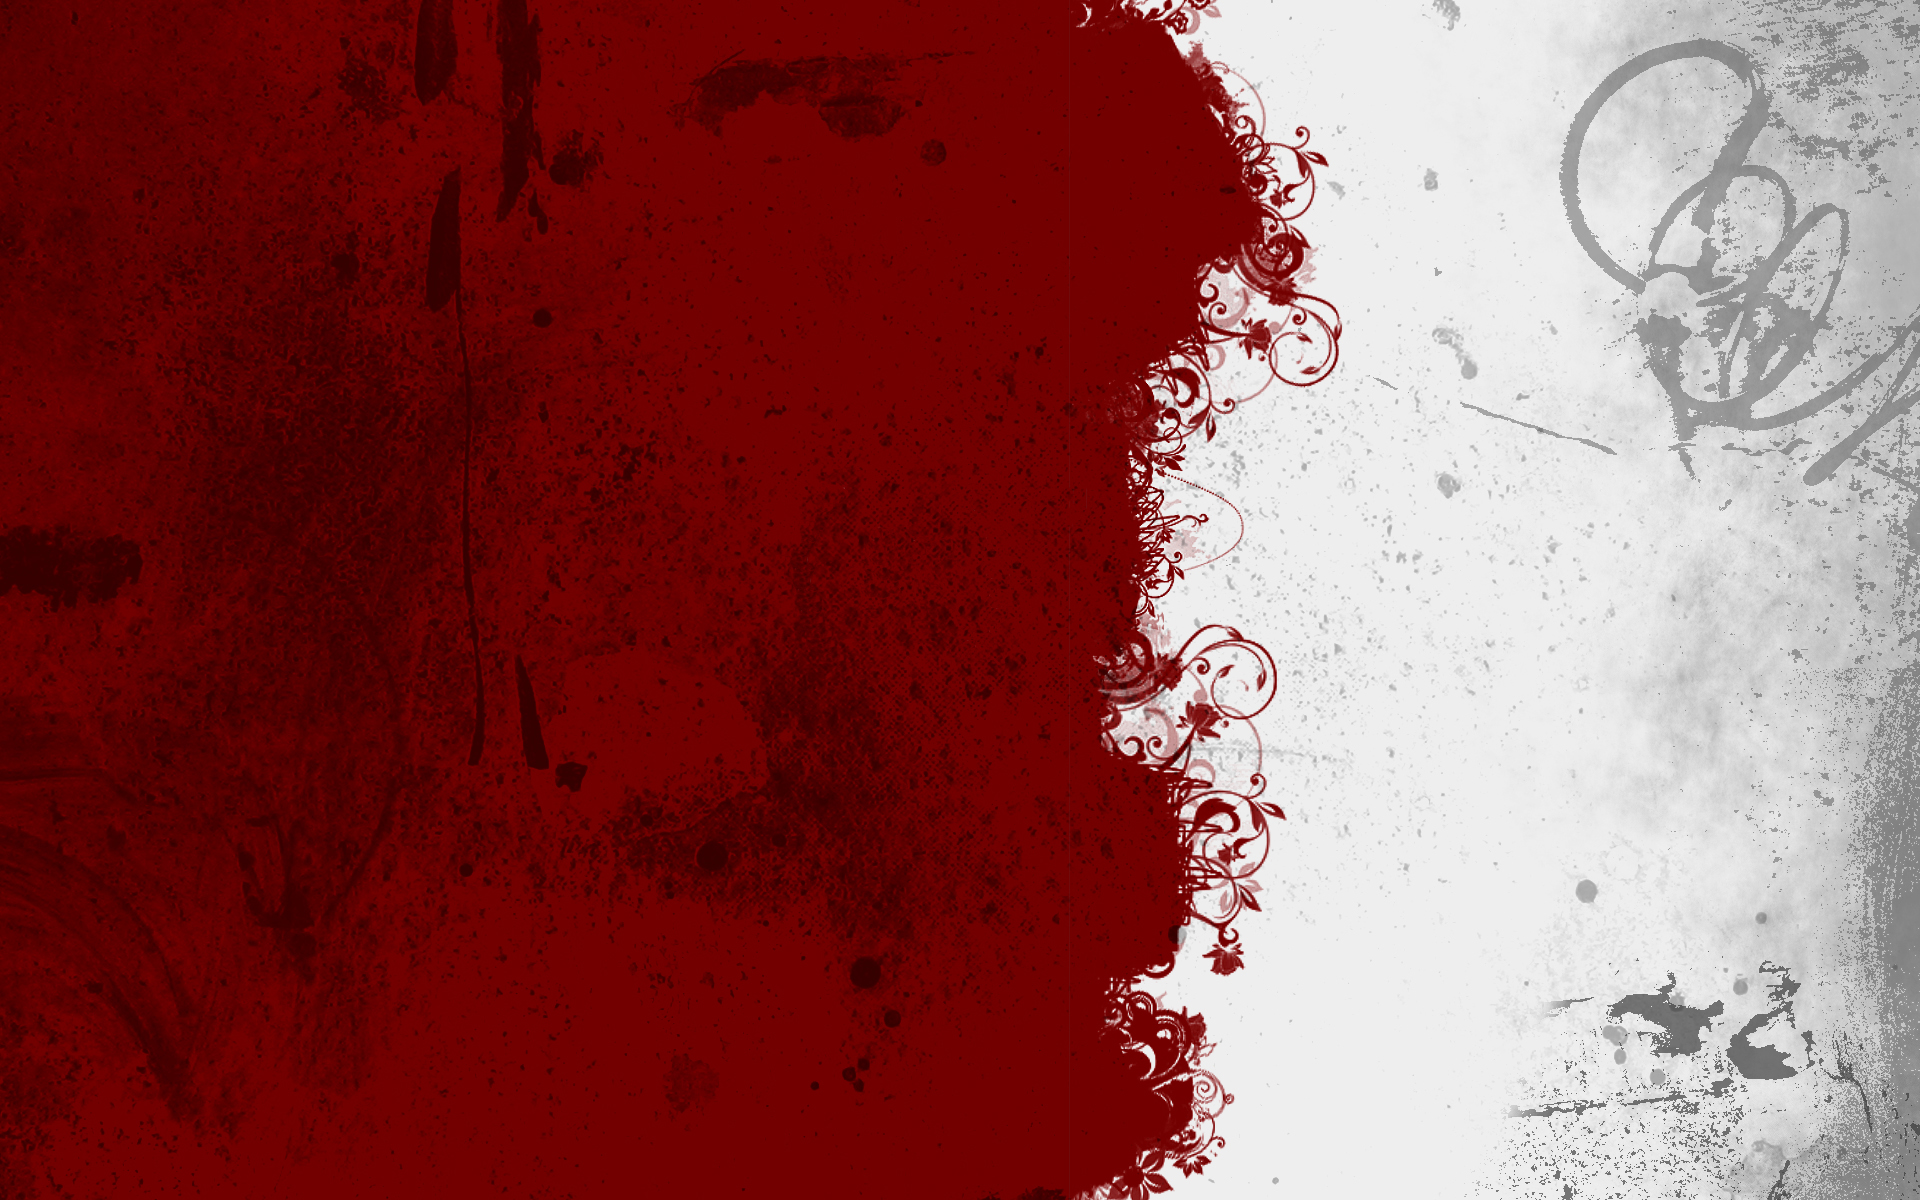 abstract red white wallpaper 1920x1200 8495 wallpaperup - Red White Wallpaper